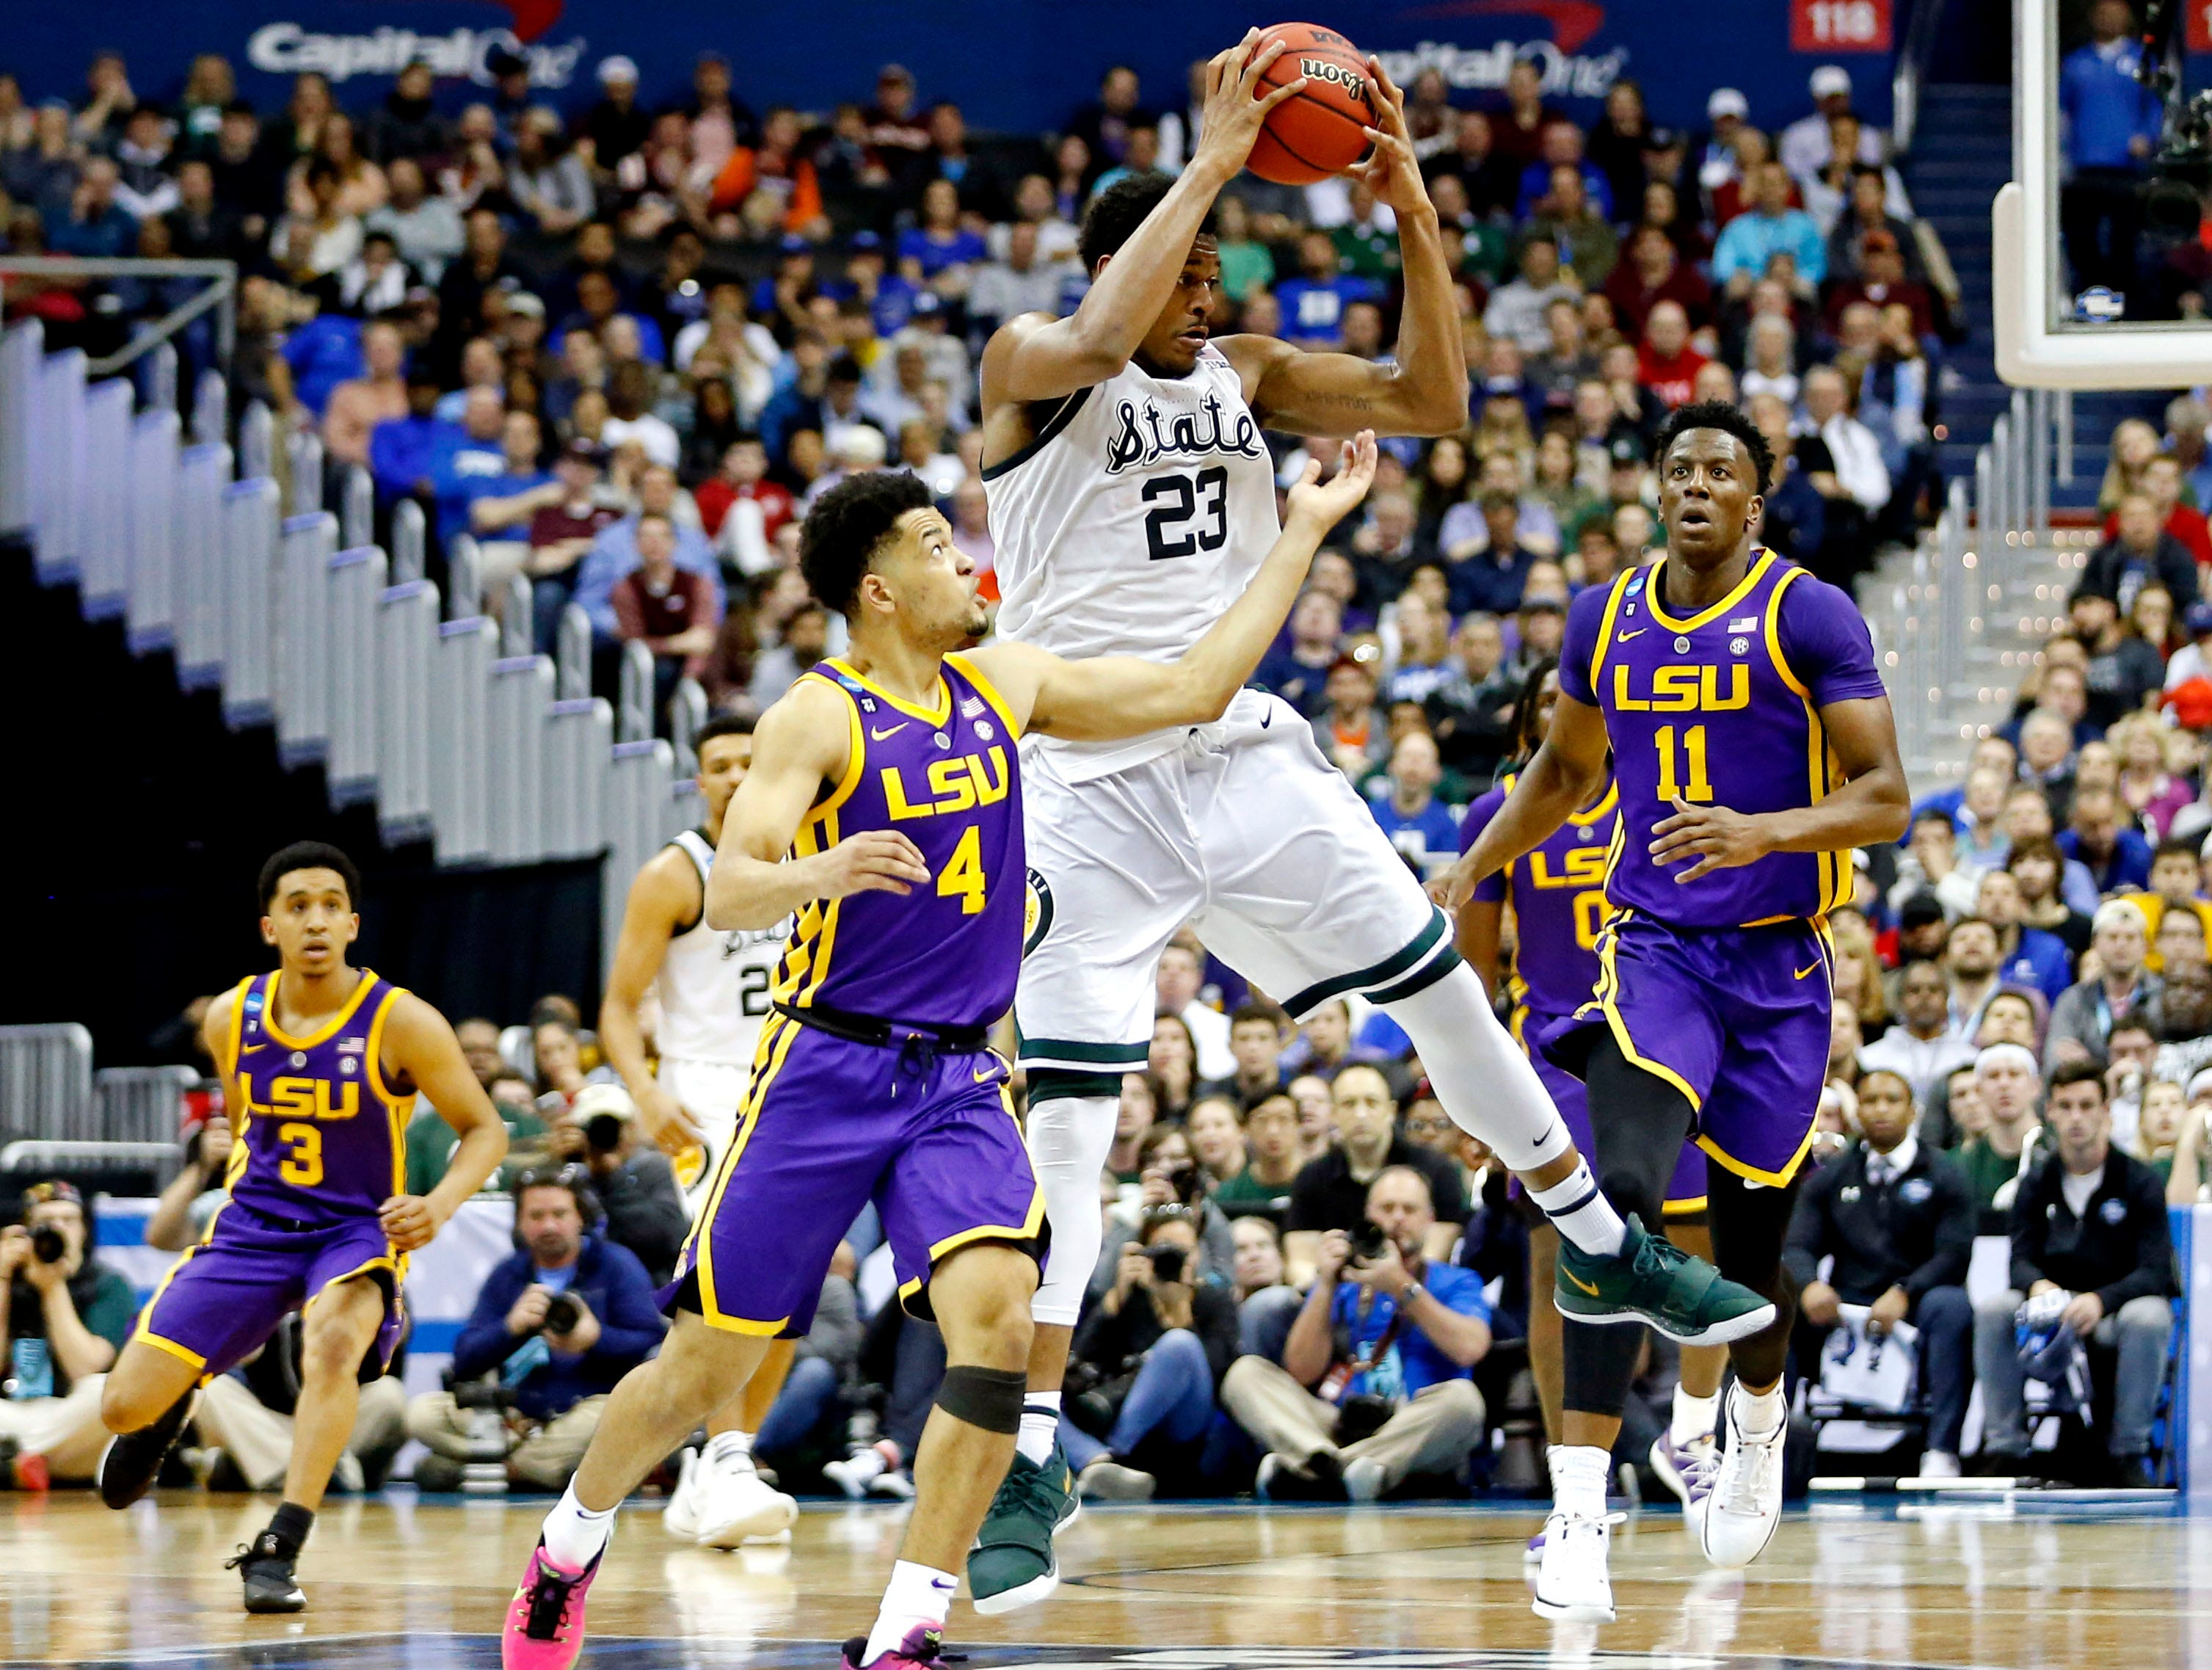 Mar 29, 2019; Washington, DC, USA; Michigan State Spartans forward Xavier Tillman (23) and LSU Tigers guard Skylar Mays (4) go for a loose ball during the second half in the semifinals of the east regional of the 2019 NCAA Tournament at Capital One Arena. Mandatory Credit: Amber Searls-USA TODAY Sports